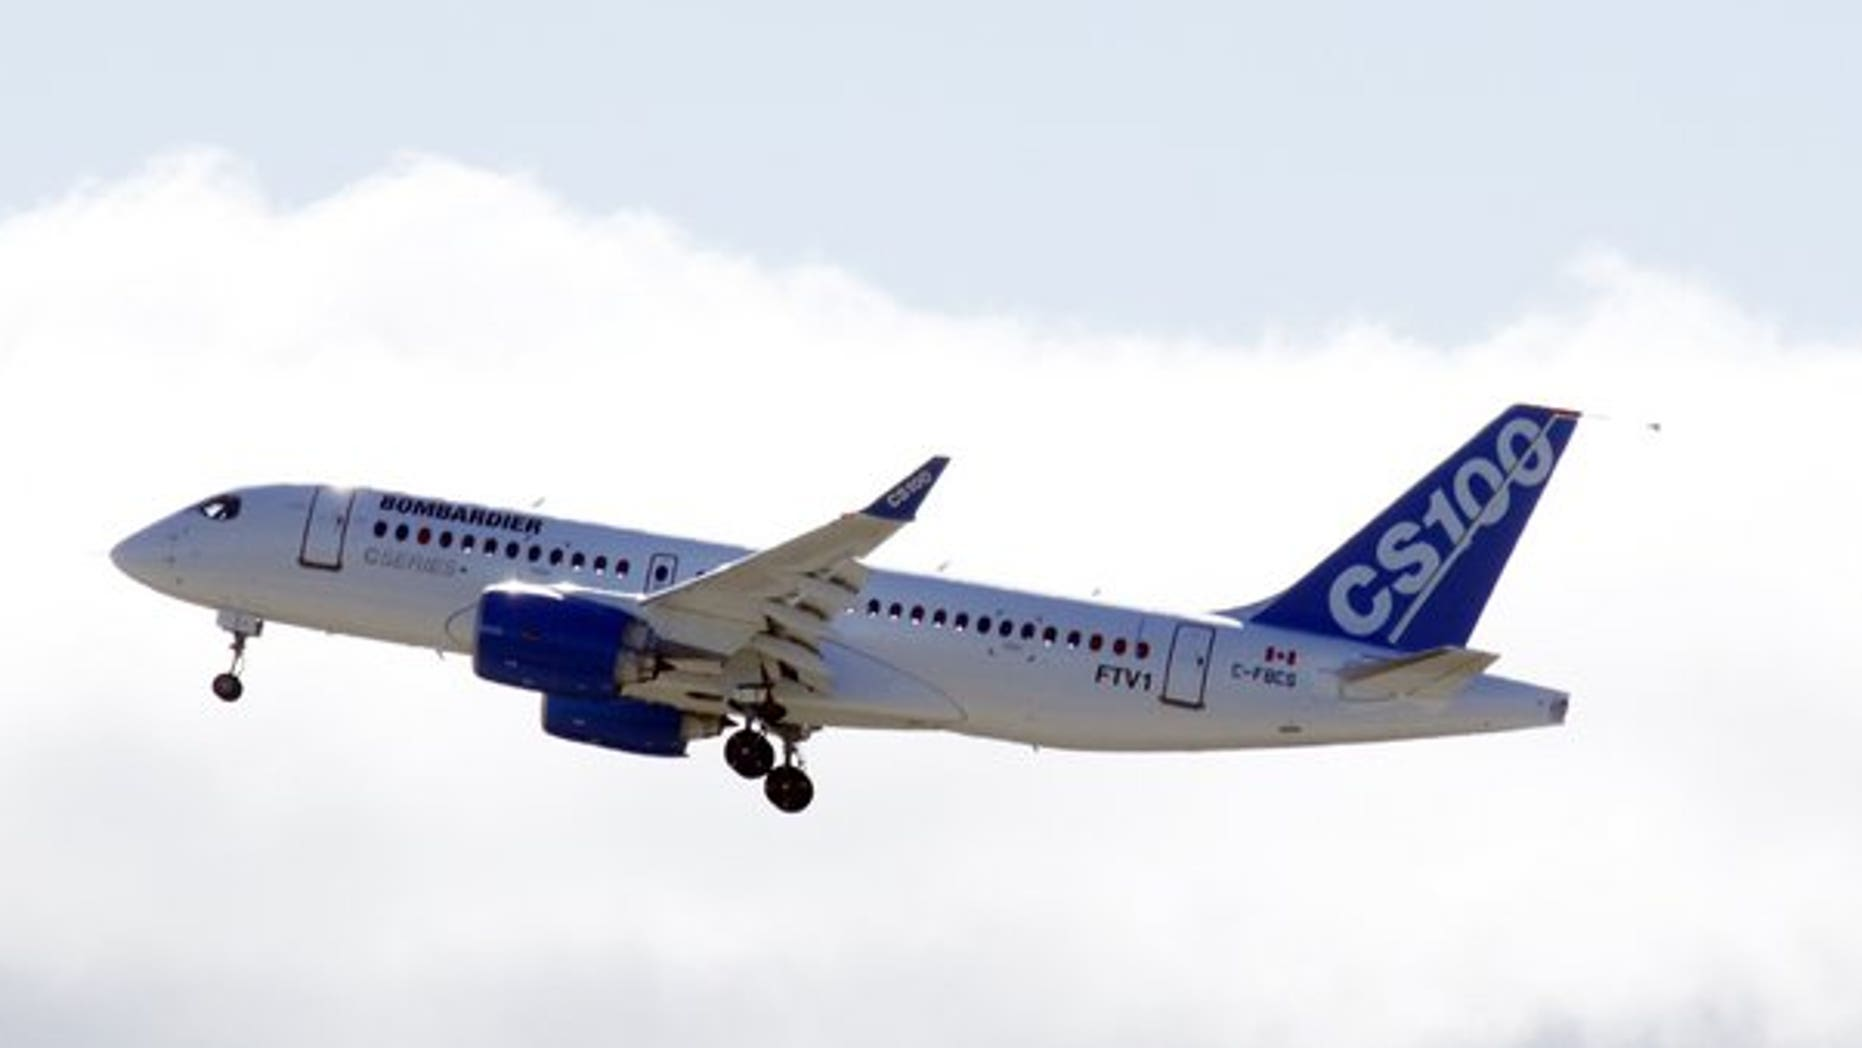 The new Bombardier aircraft CS100 is shown in Mirabel, Quebec after taking off for the first time on September 16, 2013.